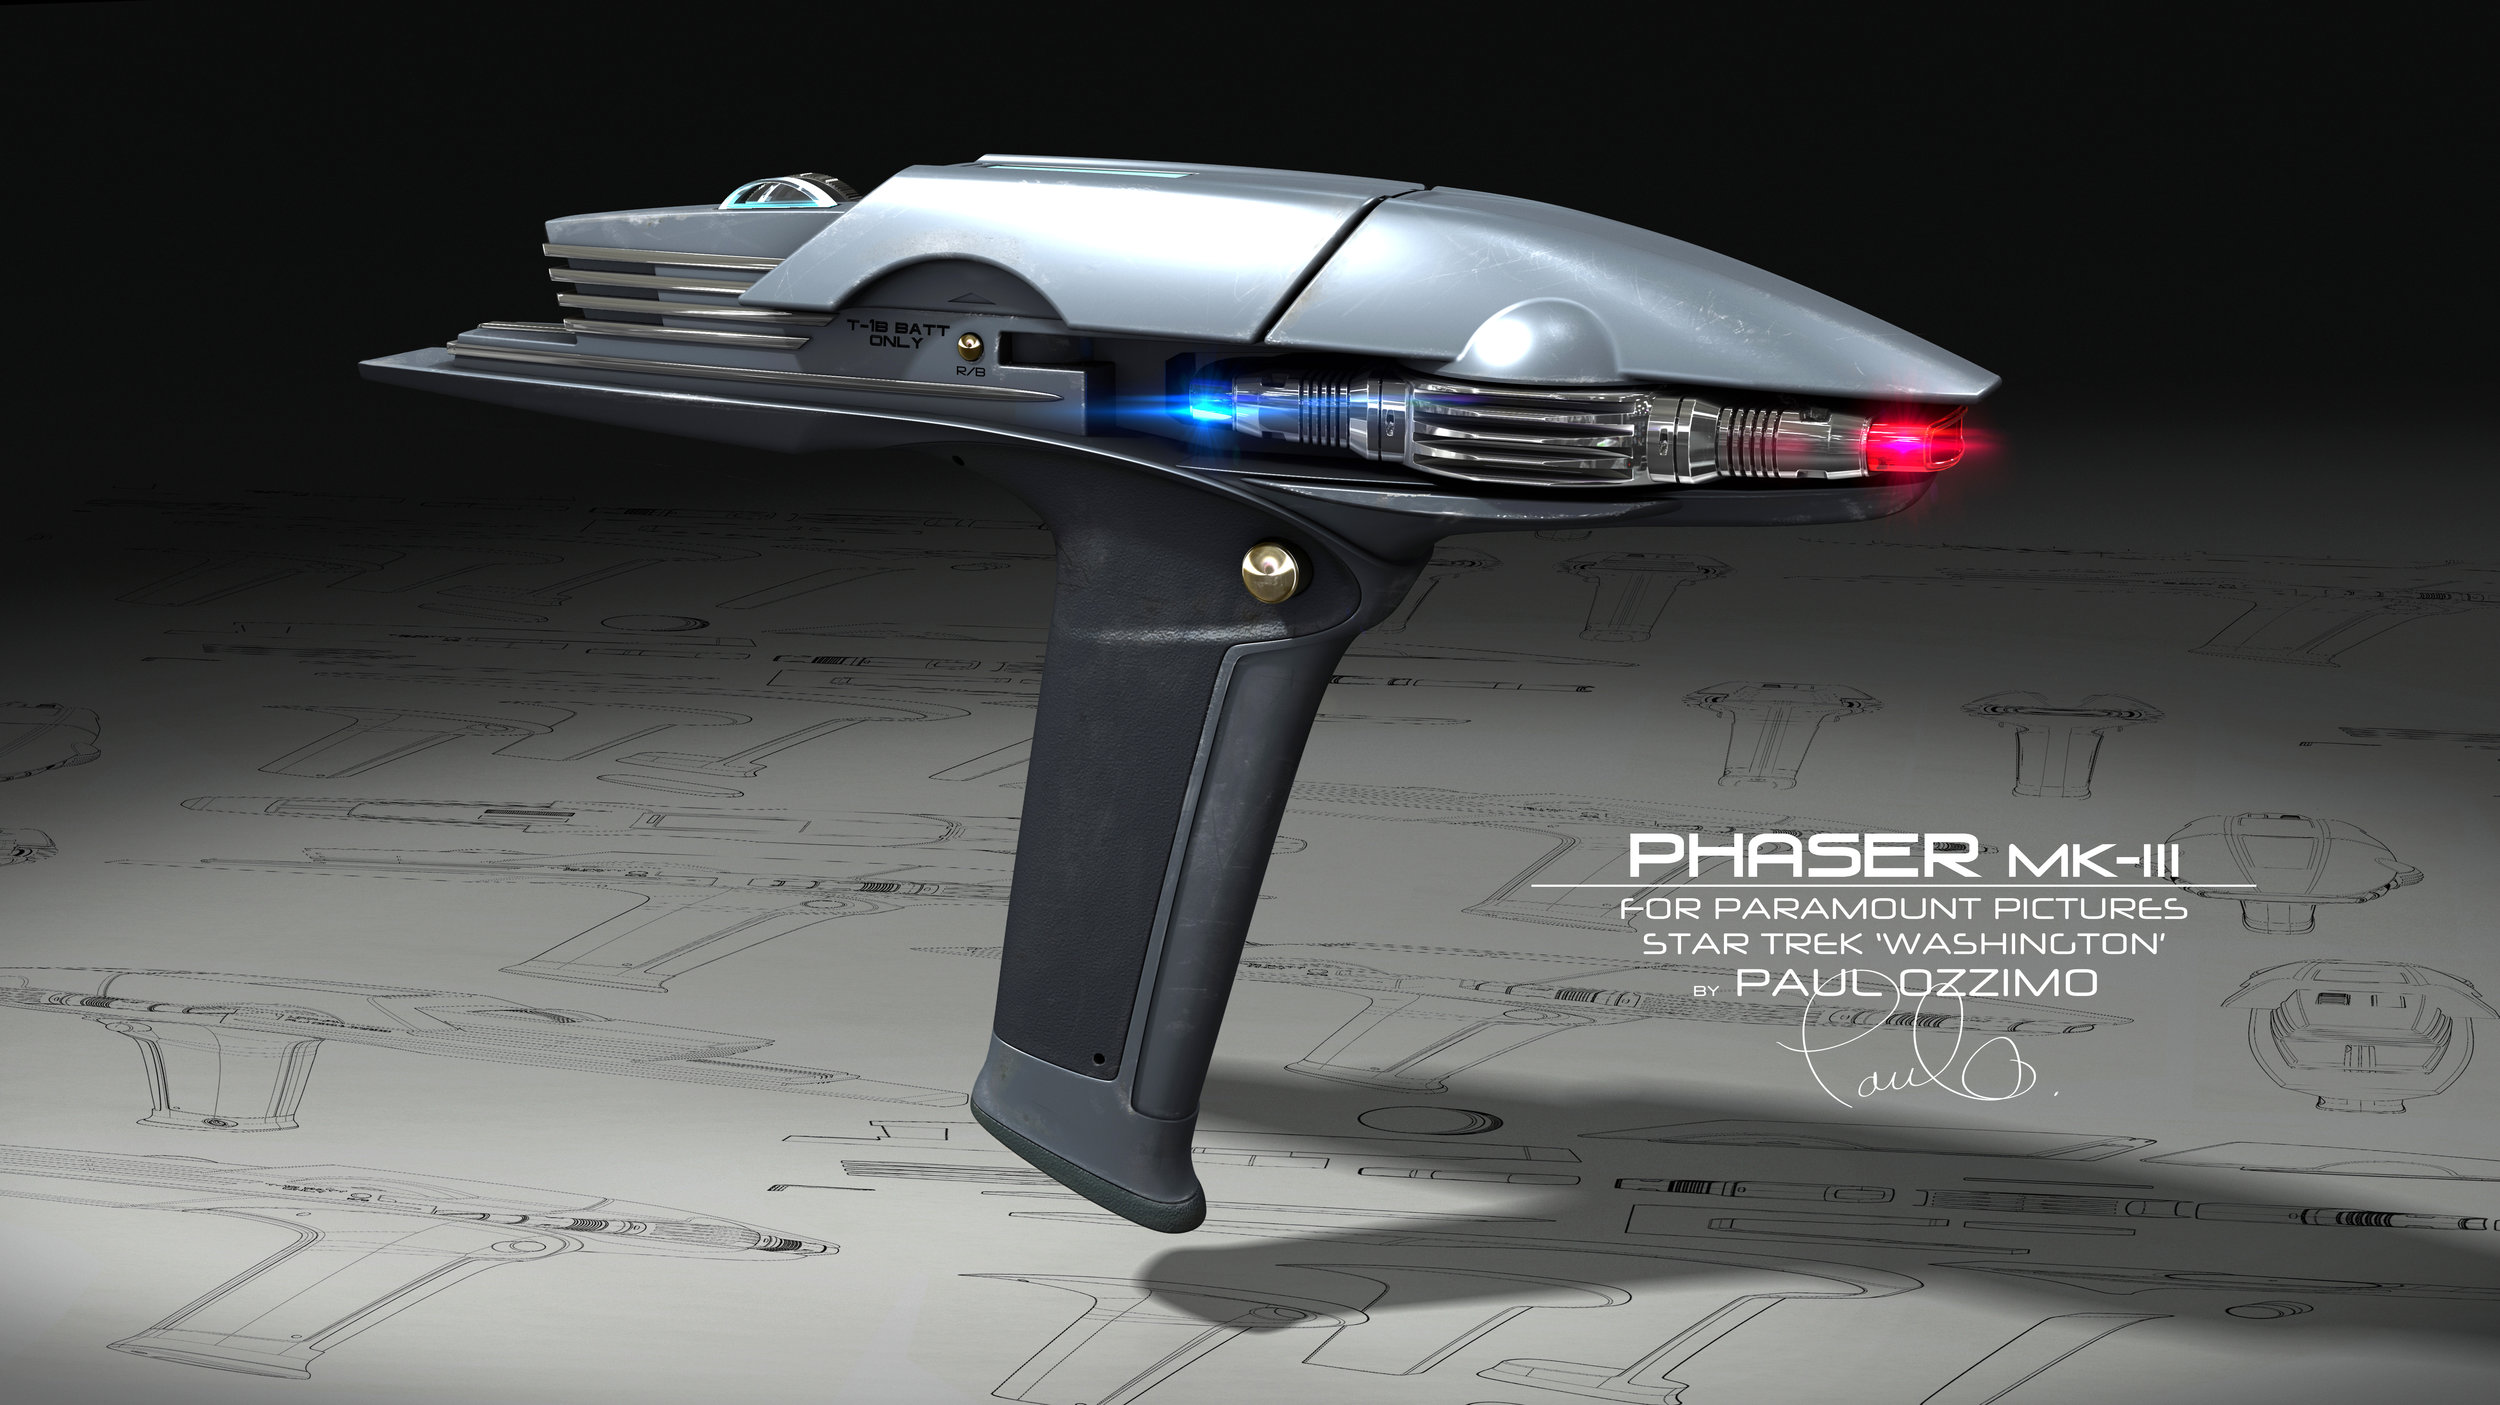 Phaser_render_003E_beauty_002B.jpg